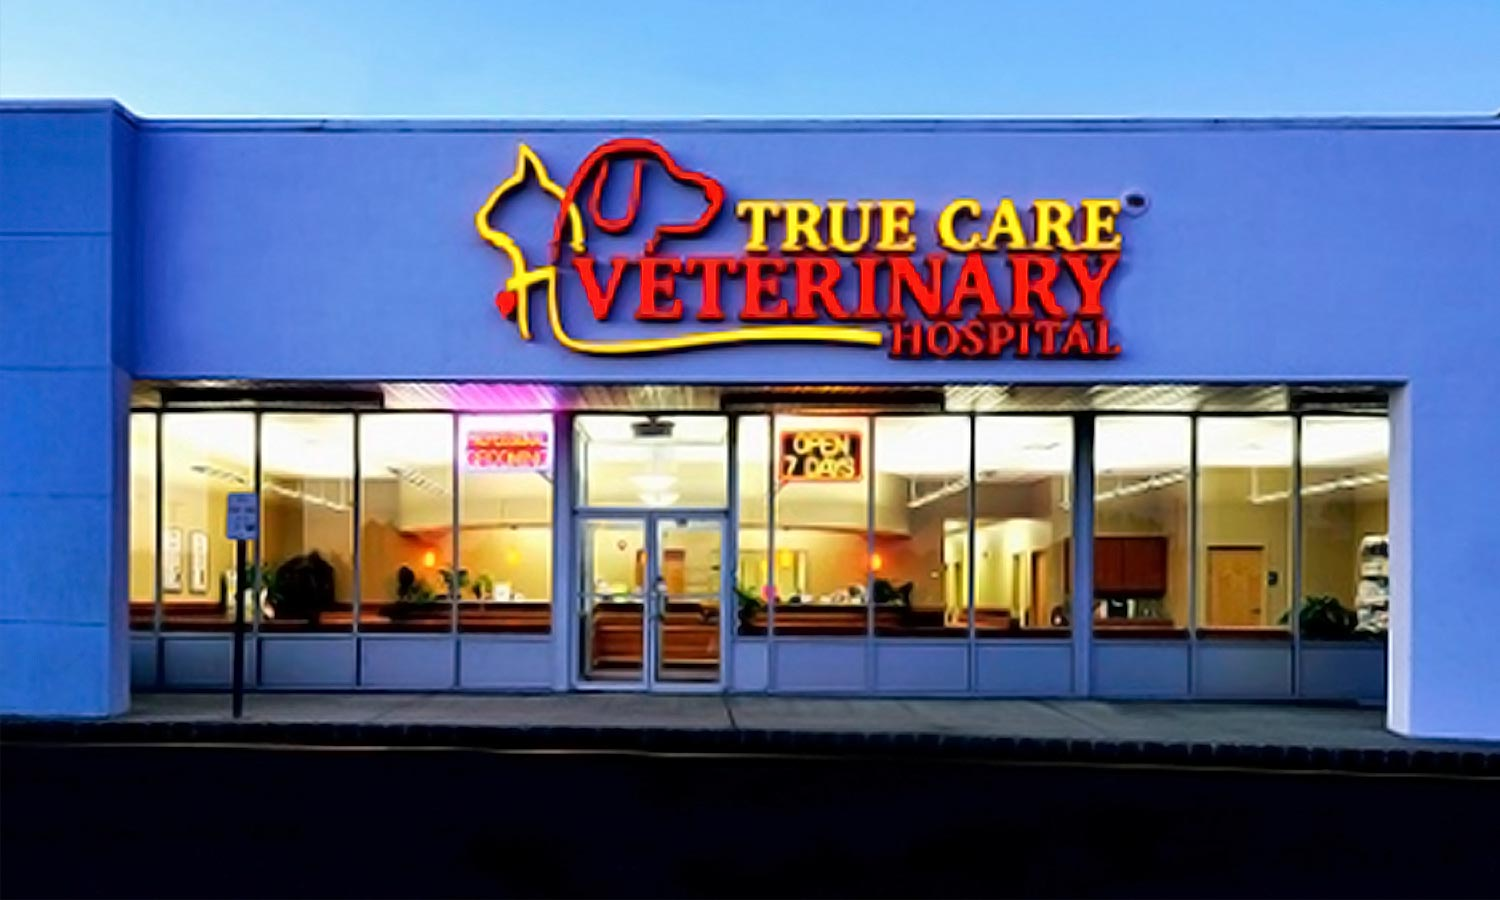 True Care Veterinary Hospital